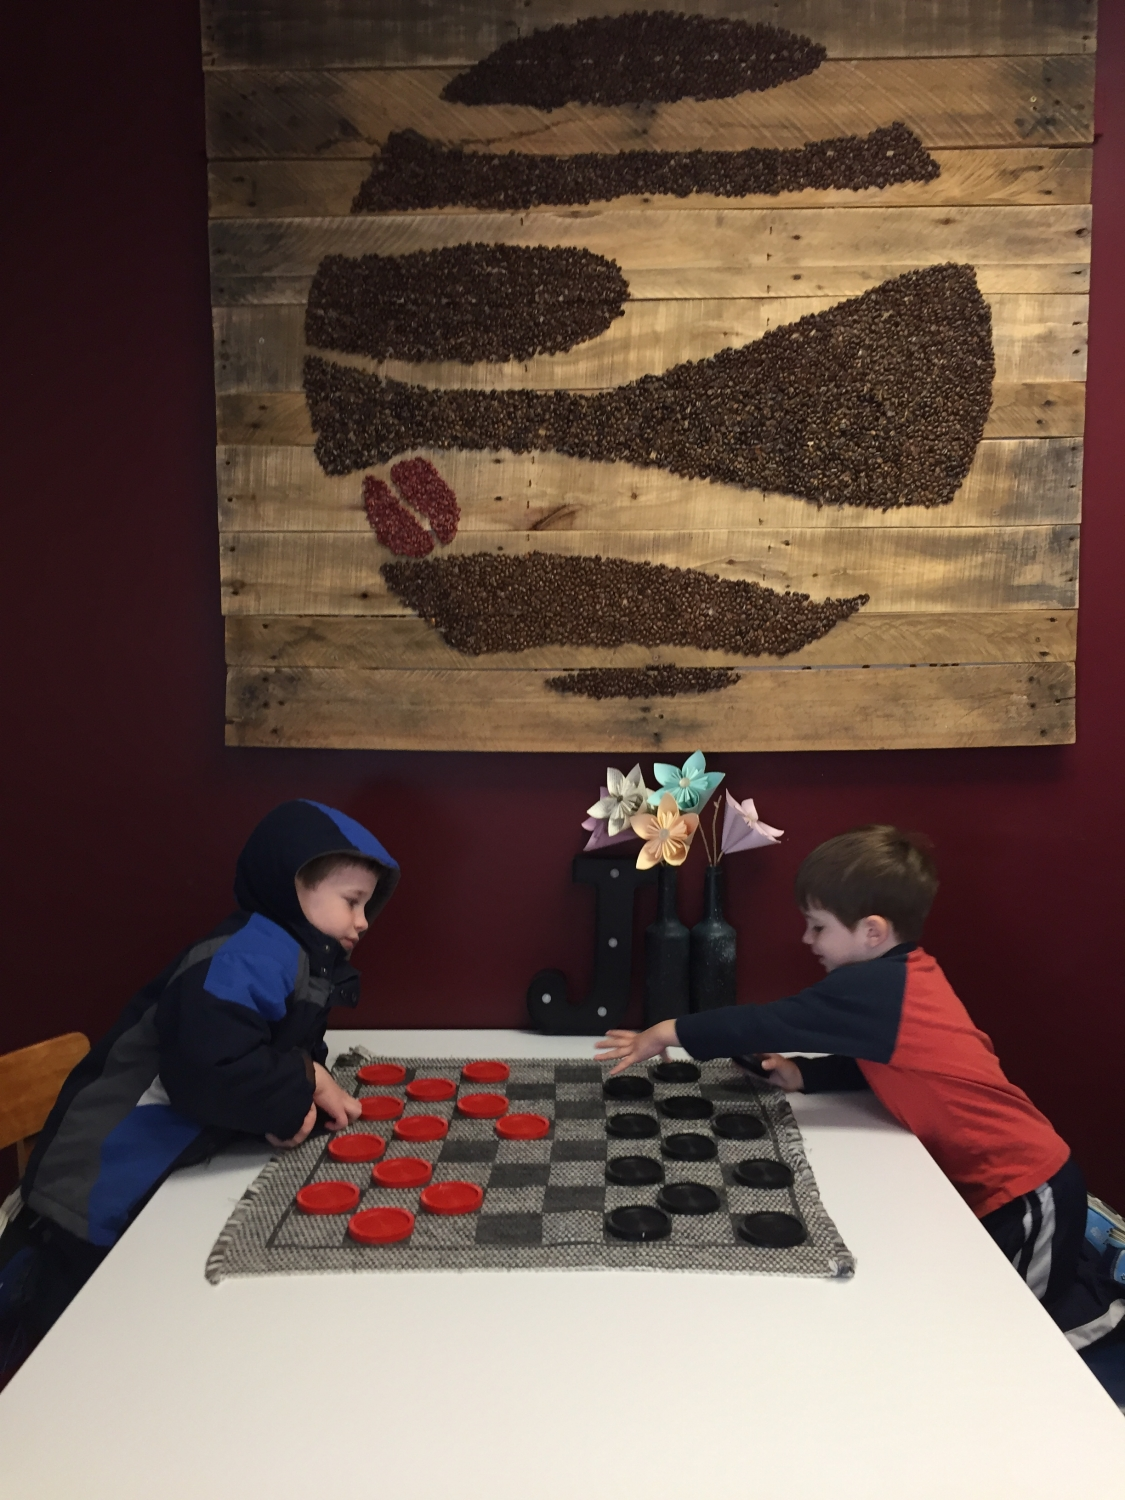 boys playing checkers at Jupiter Coffee and Donuts